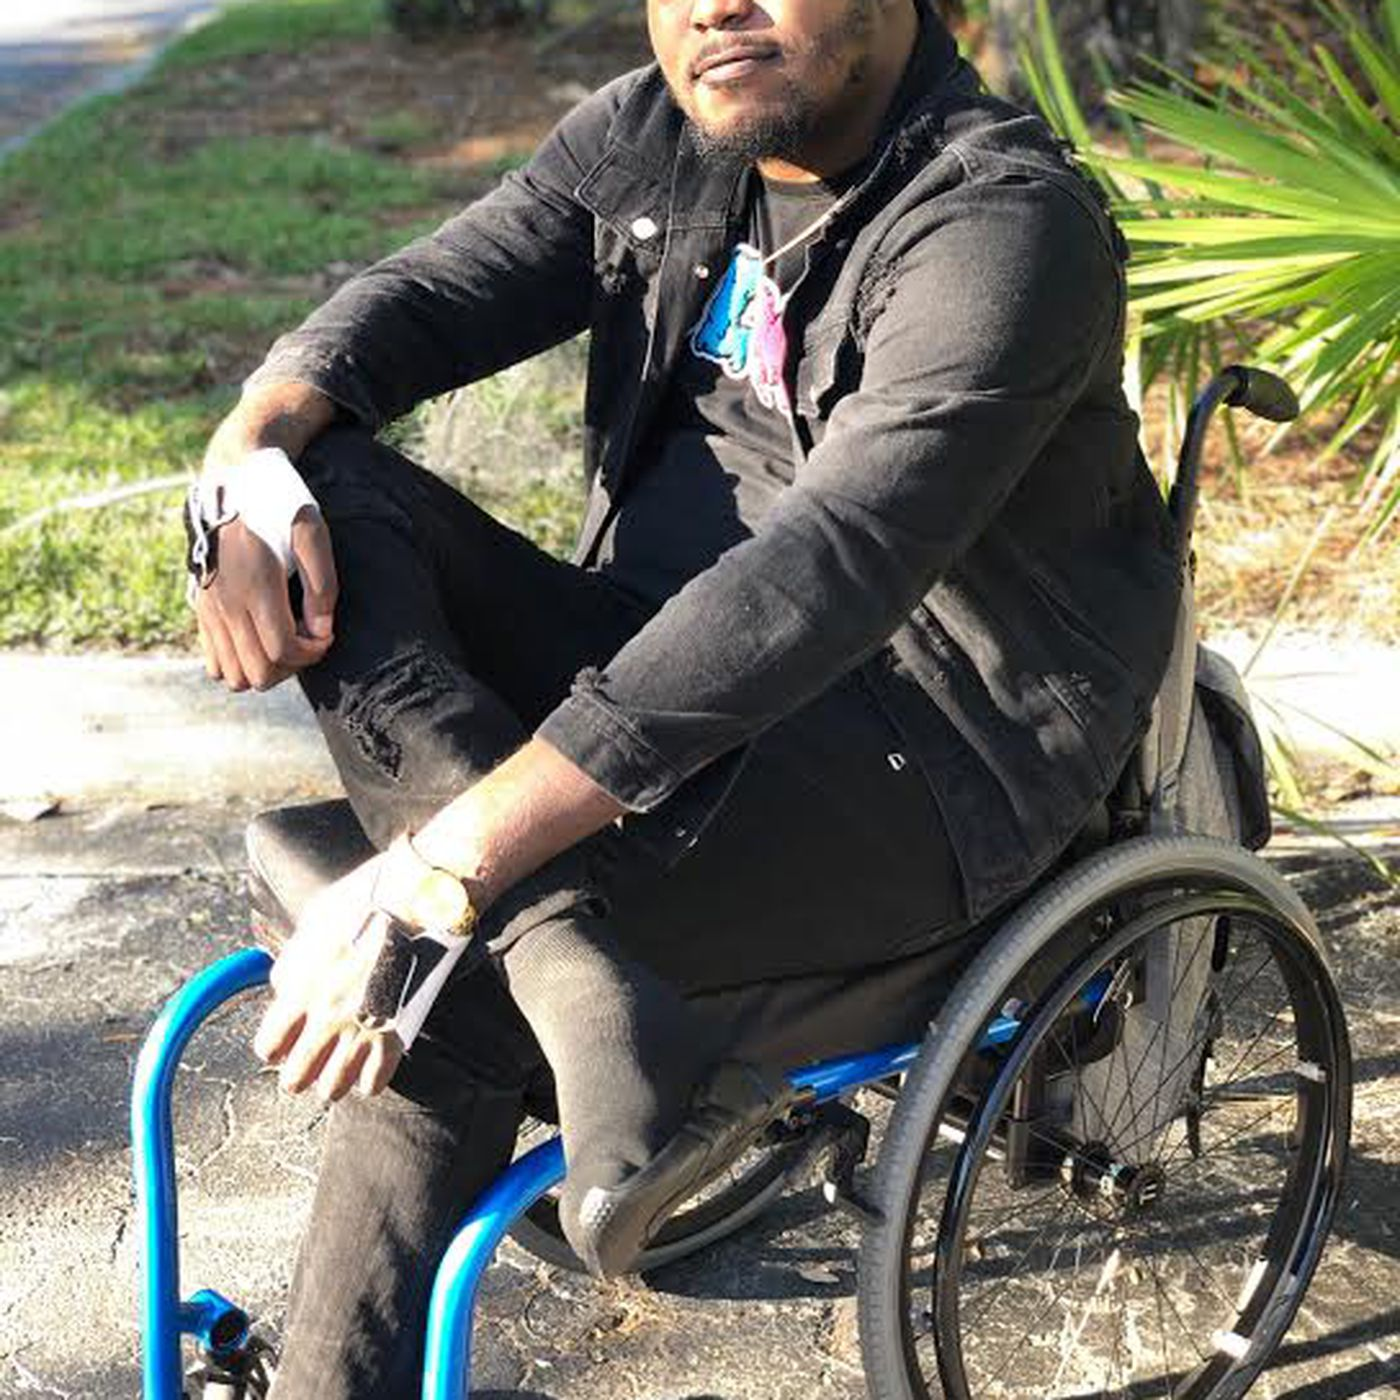 Making love with her hot paralyzed legs Bobby Roundtree Paralyzed Ex Illinois Football Star Is Down But Never Out Chicago Sun Times